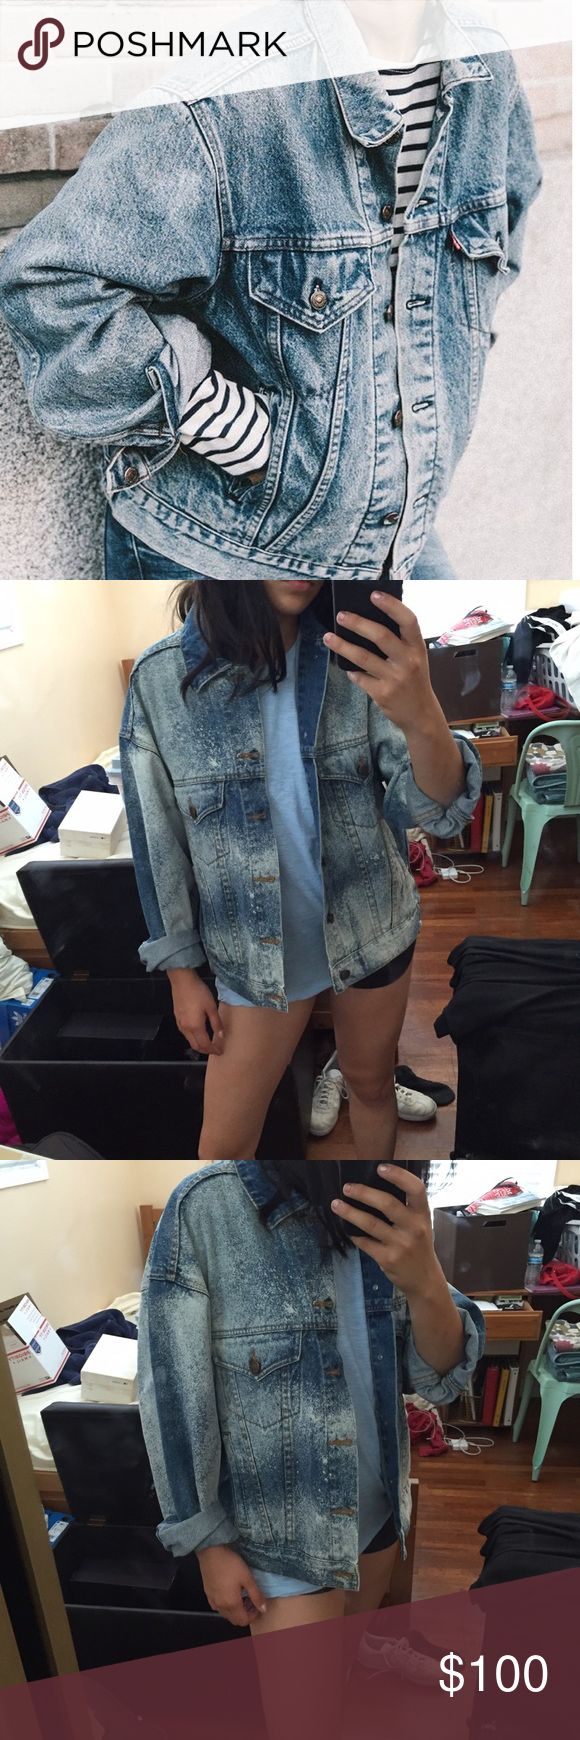 """Vintage Oversized Denim Jacket Will fit a size 4-6 for an over sized denim jacket look • I am 5,7"""" and a size 4/27 for reference and this jacket fits me well • patch on the back reads """"Horseshoe Casino Hotel"""" • purchased from vintage store Hourseshoe Jackets & Coats Jean Jackets"""